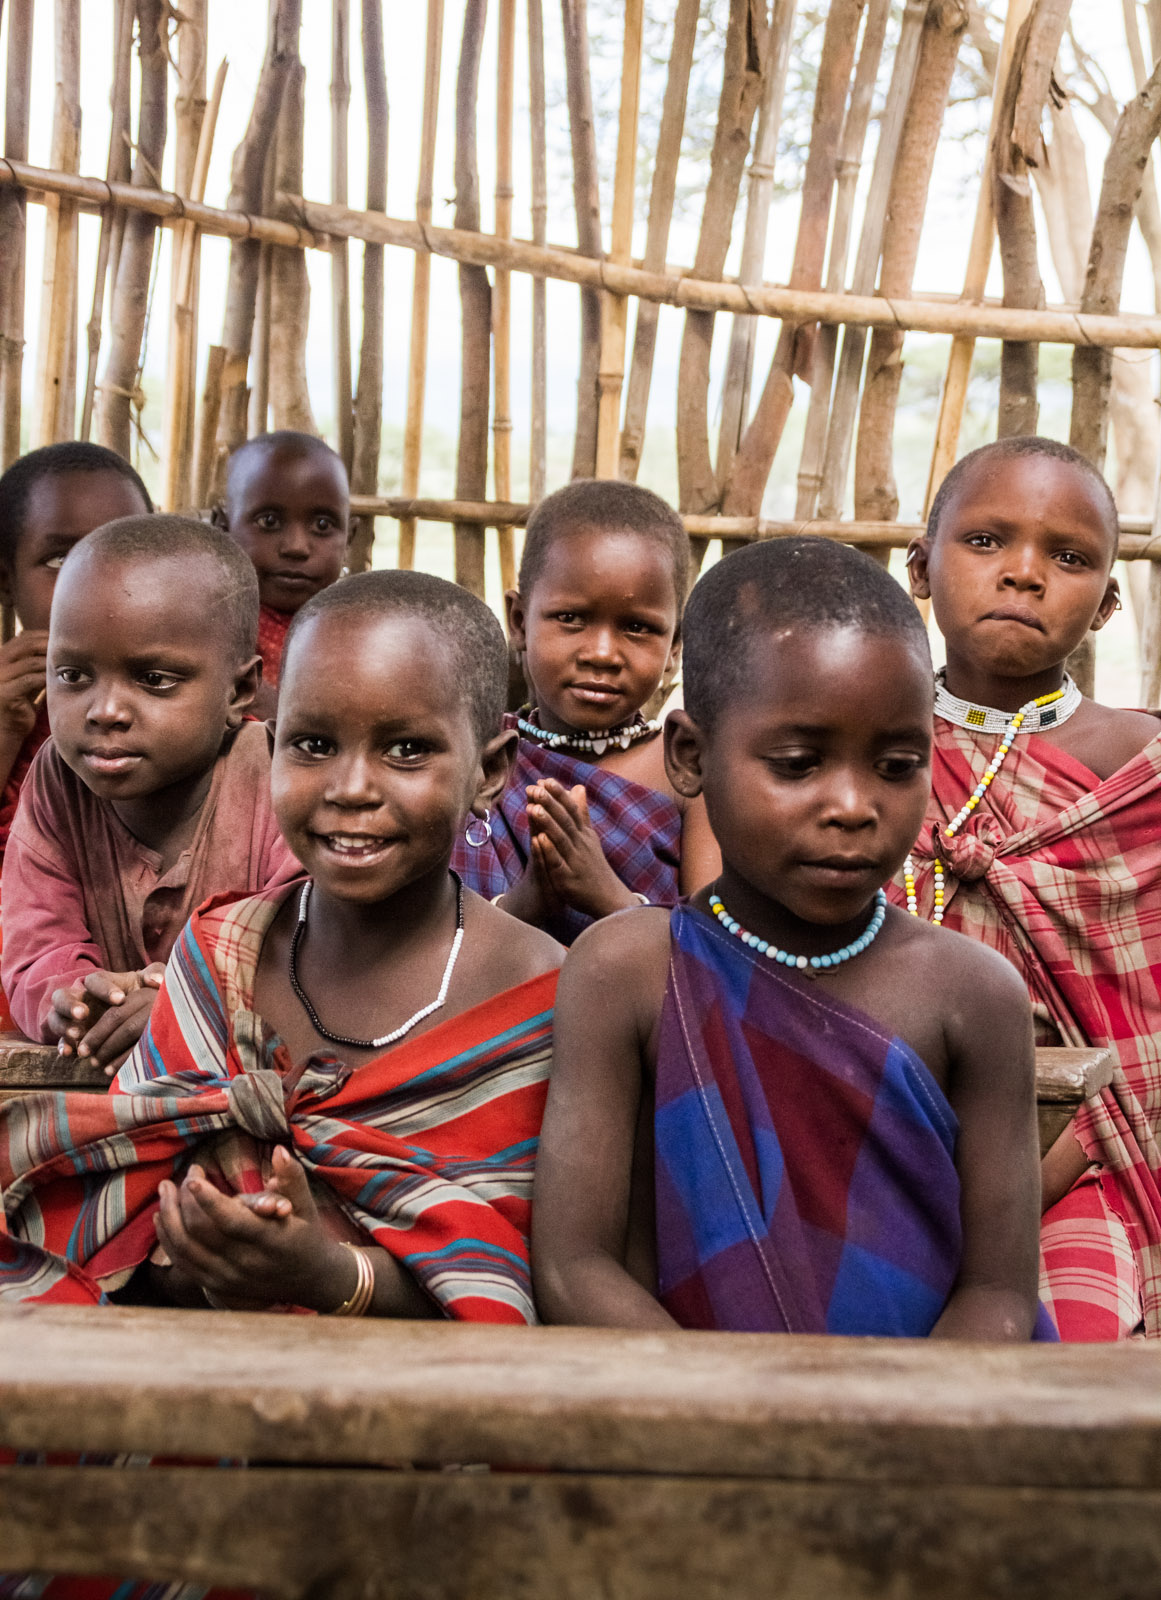 Maasai-children-portraits-in-school